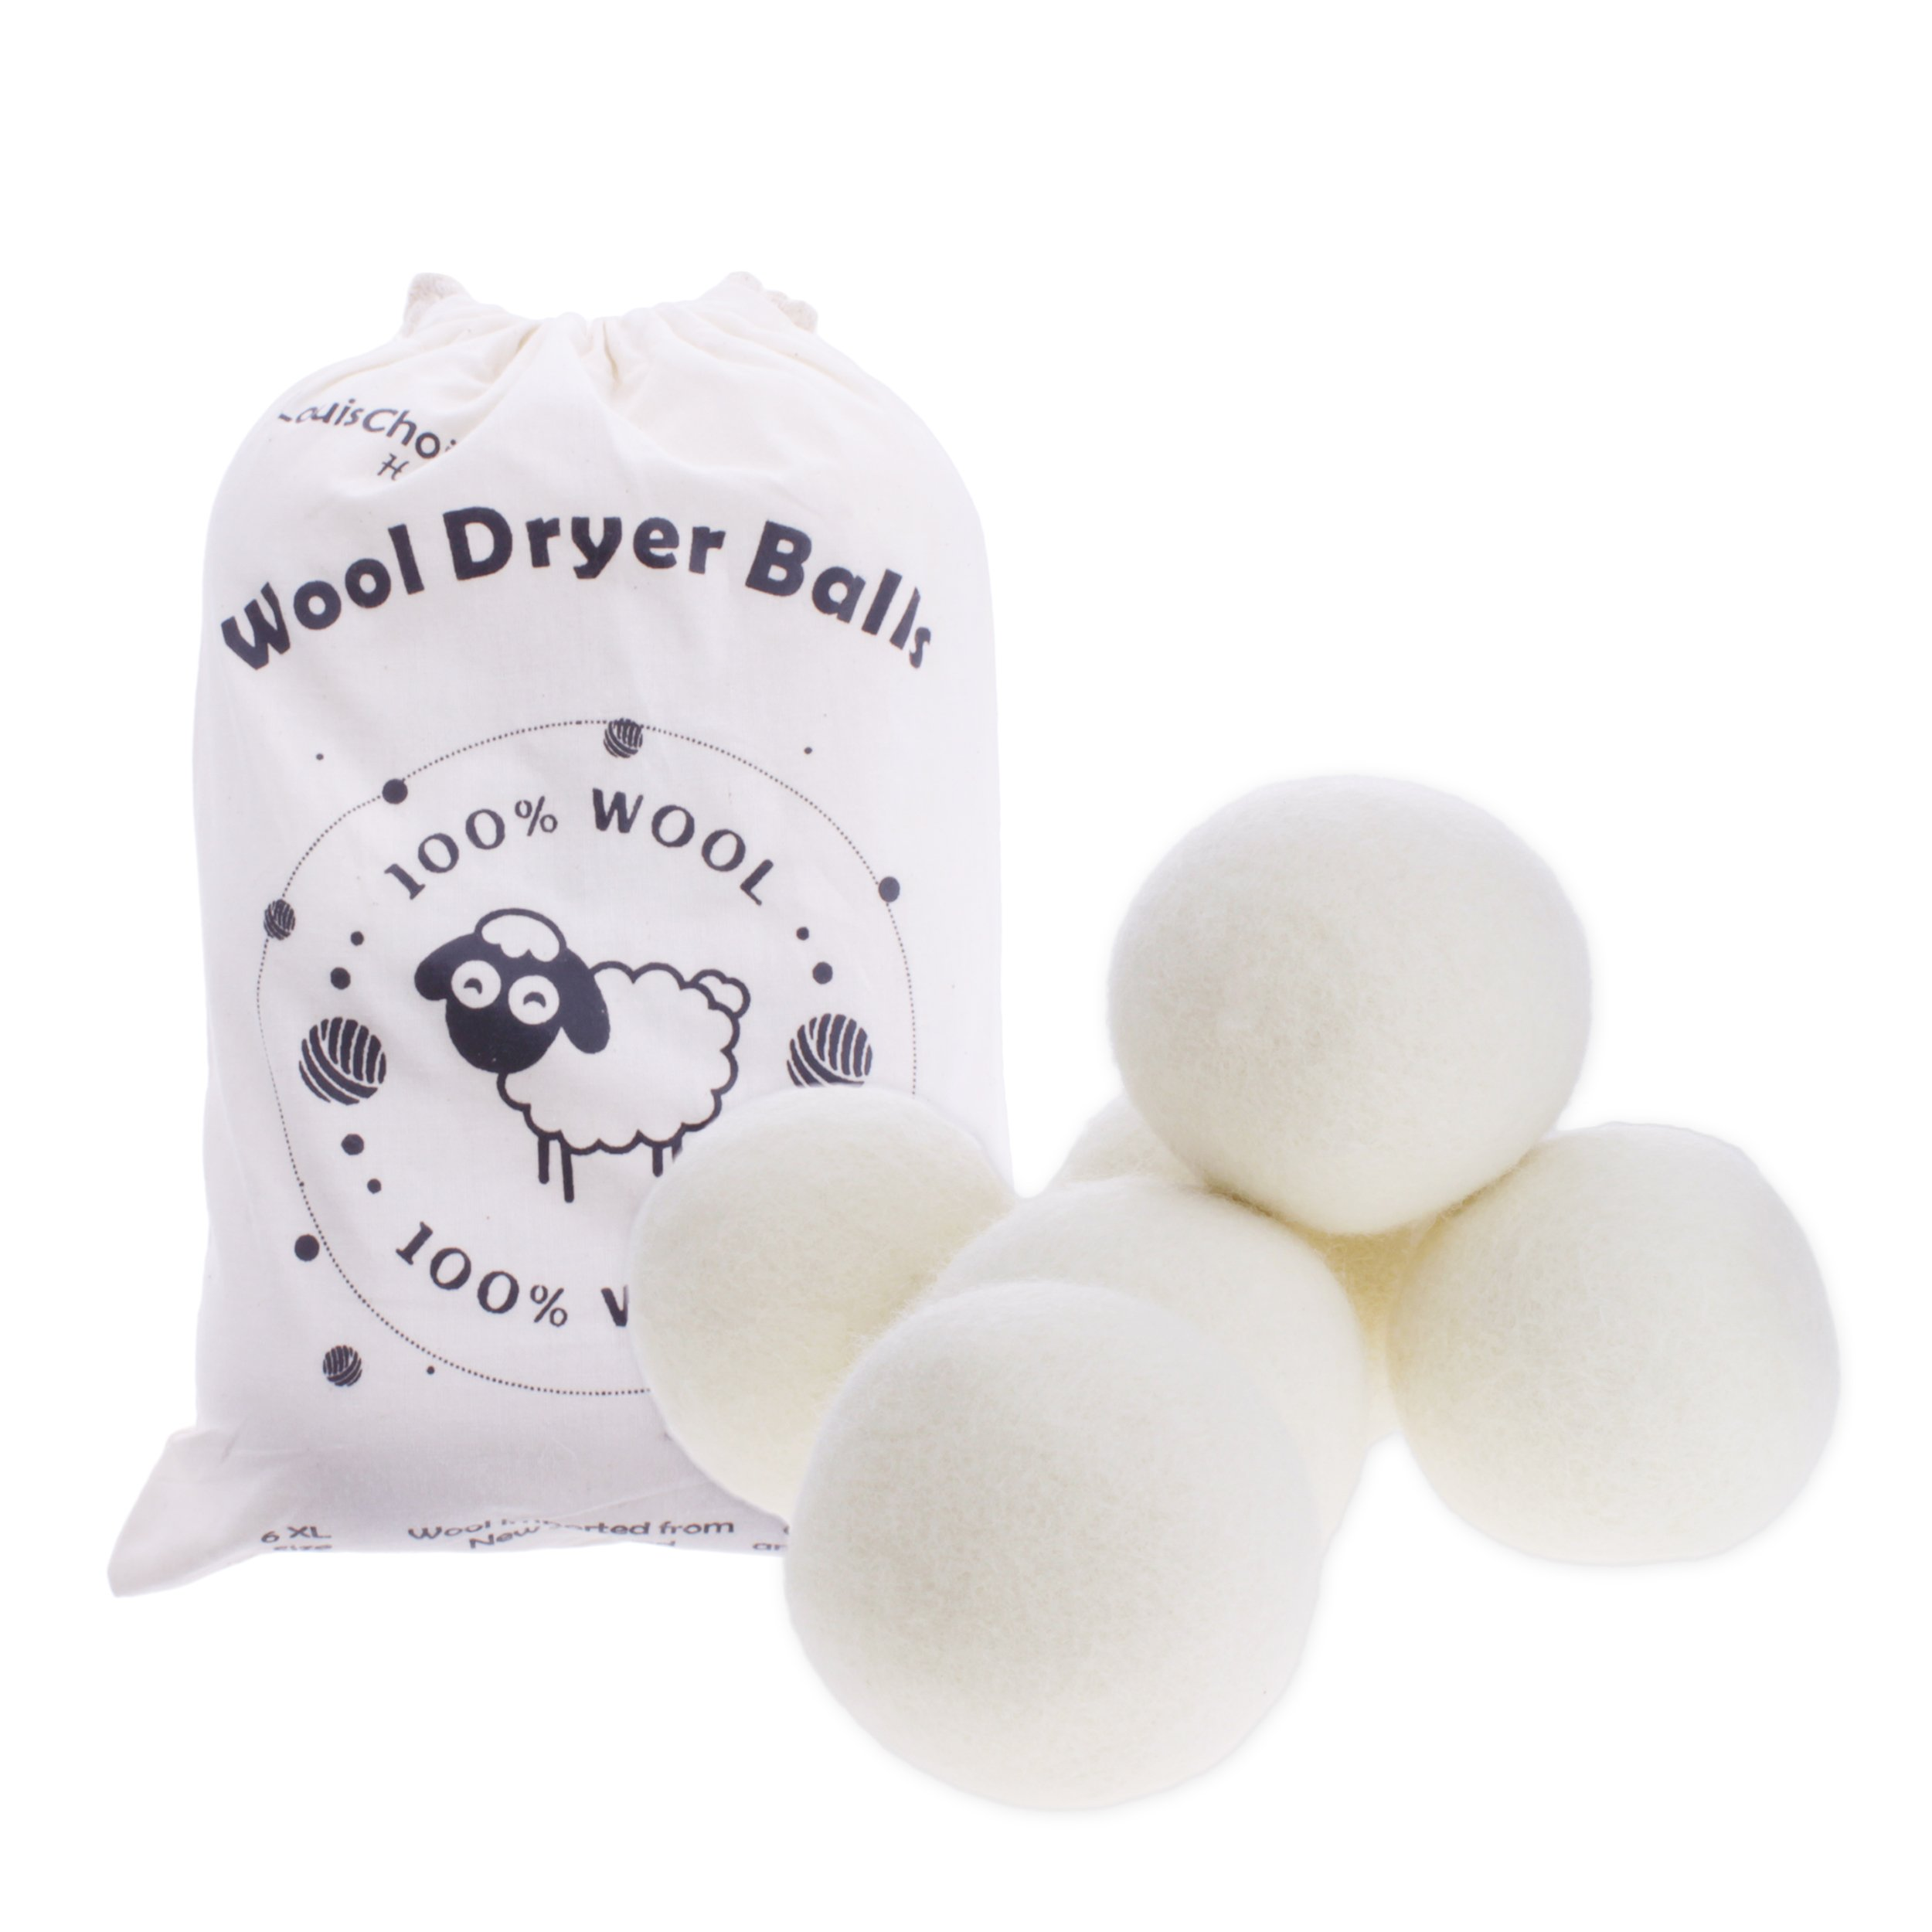 Wool Dryer Balls, by LouisChoice, Natural Wool Made, Organic Dryer Balls, Reusable, Large Size, Pack of 6